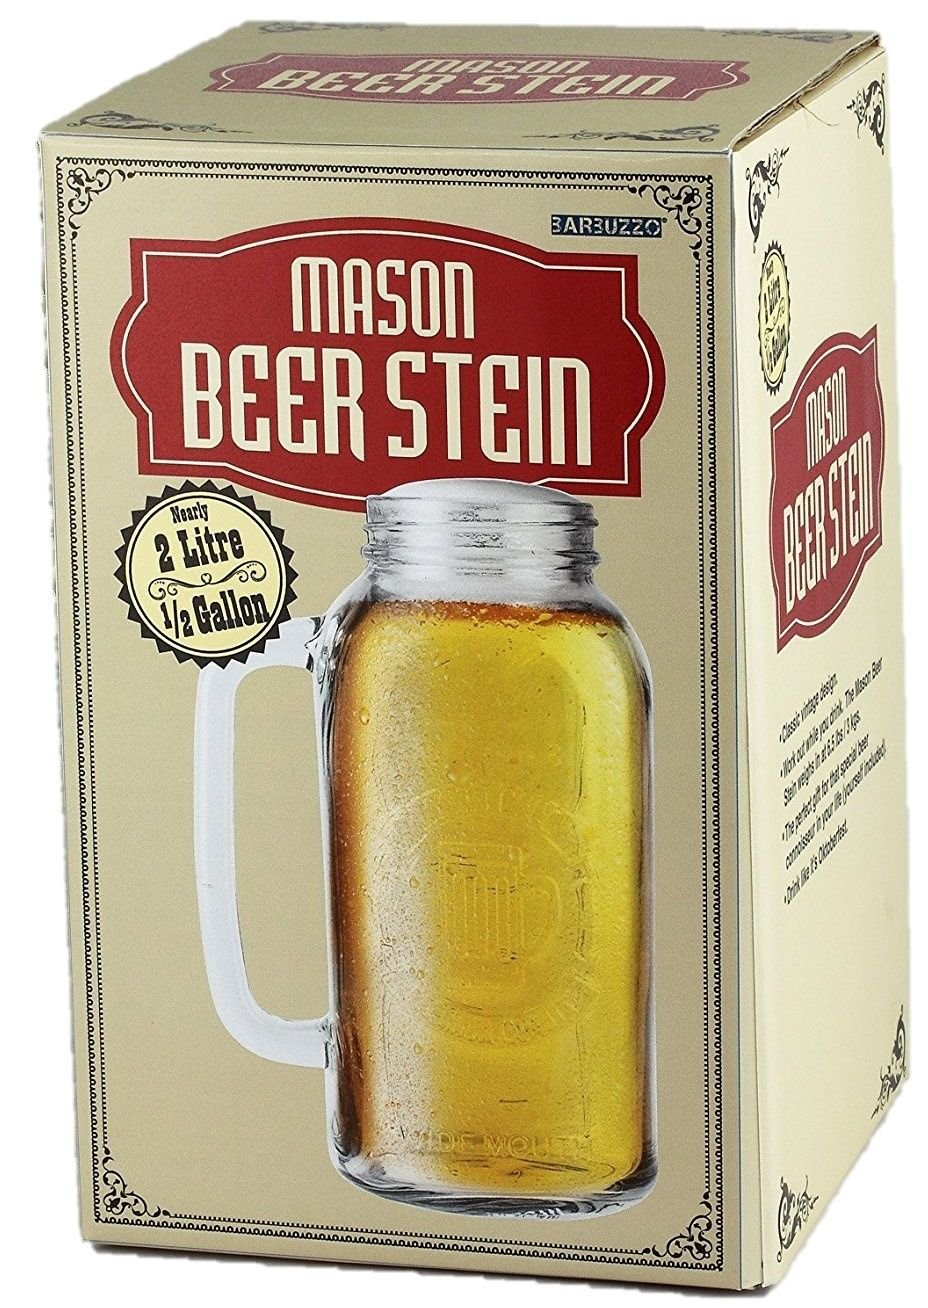 Ginormous Mason Beer Stein 2 Litre Massive Glass Beer Tankard Jug With Handles Barbuzzo